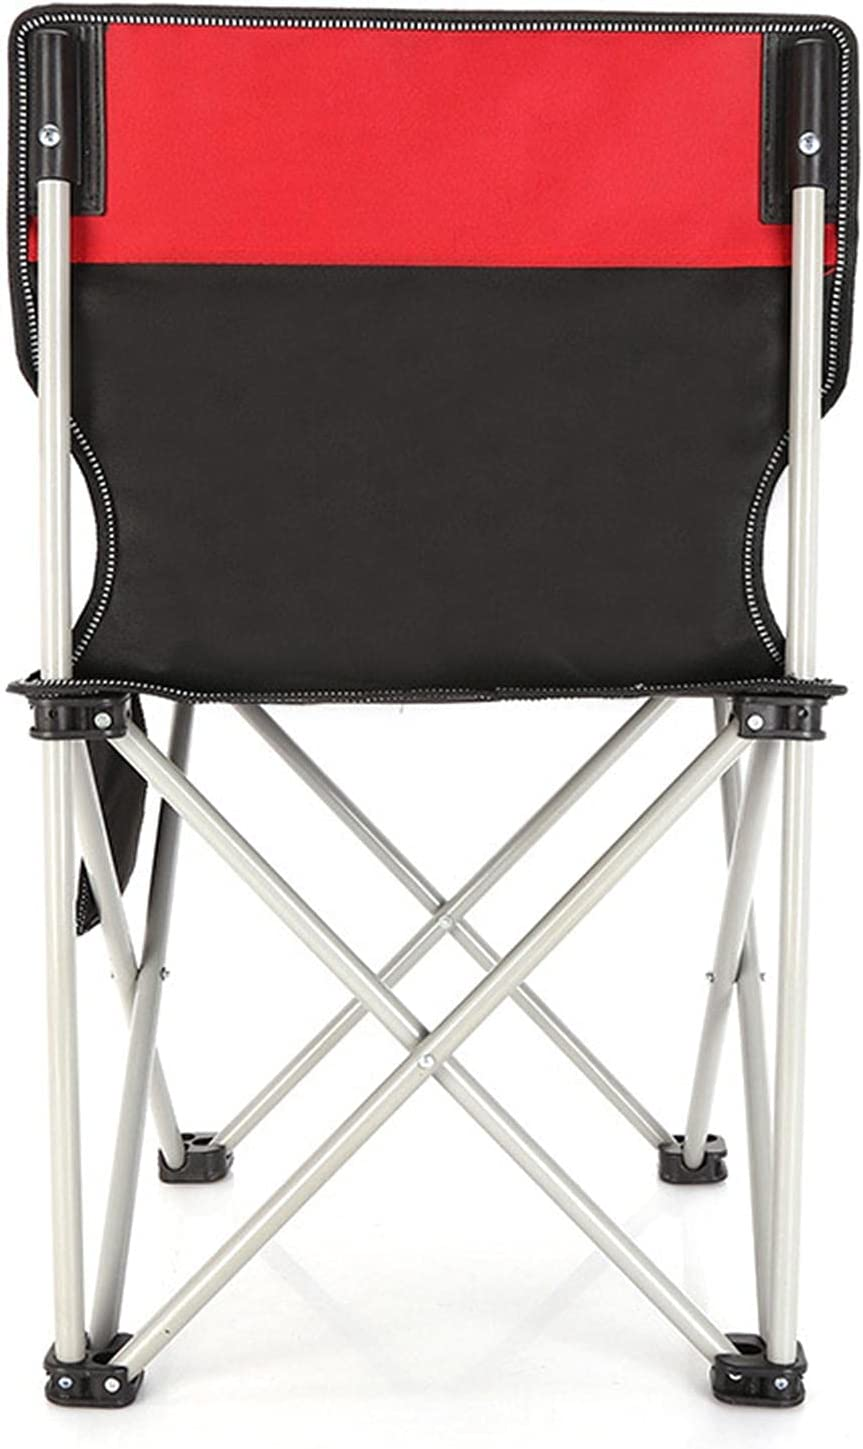 CargoTi Portable Ultralight Super beauty product restock quality top Folding Chair Camping Max 48% OFF Outdoor Extend